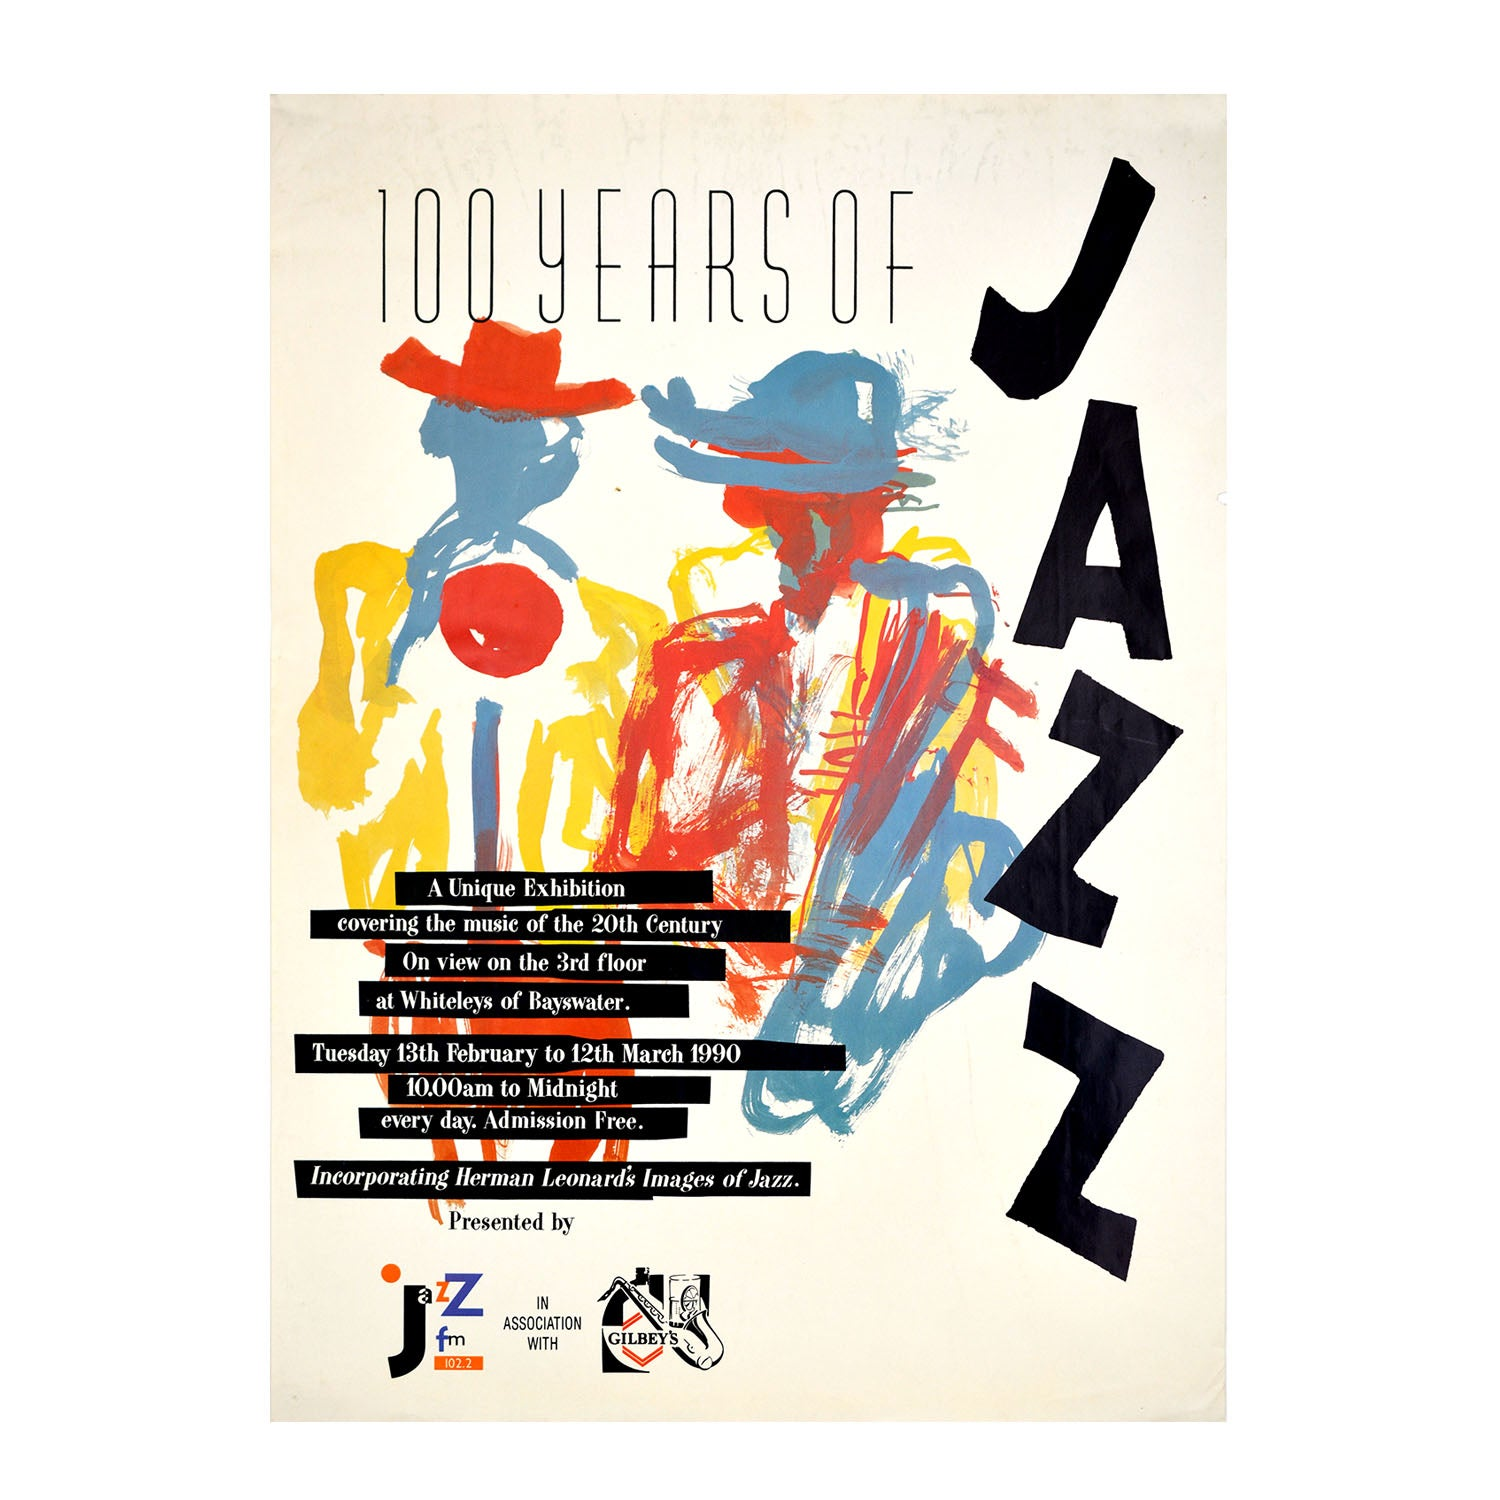 Original poster: 100 Years of Jazz. Exhibition at Whiteleys